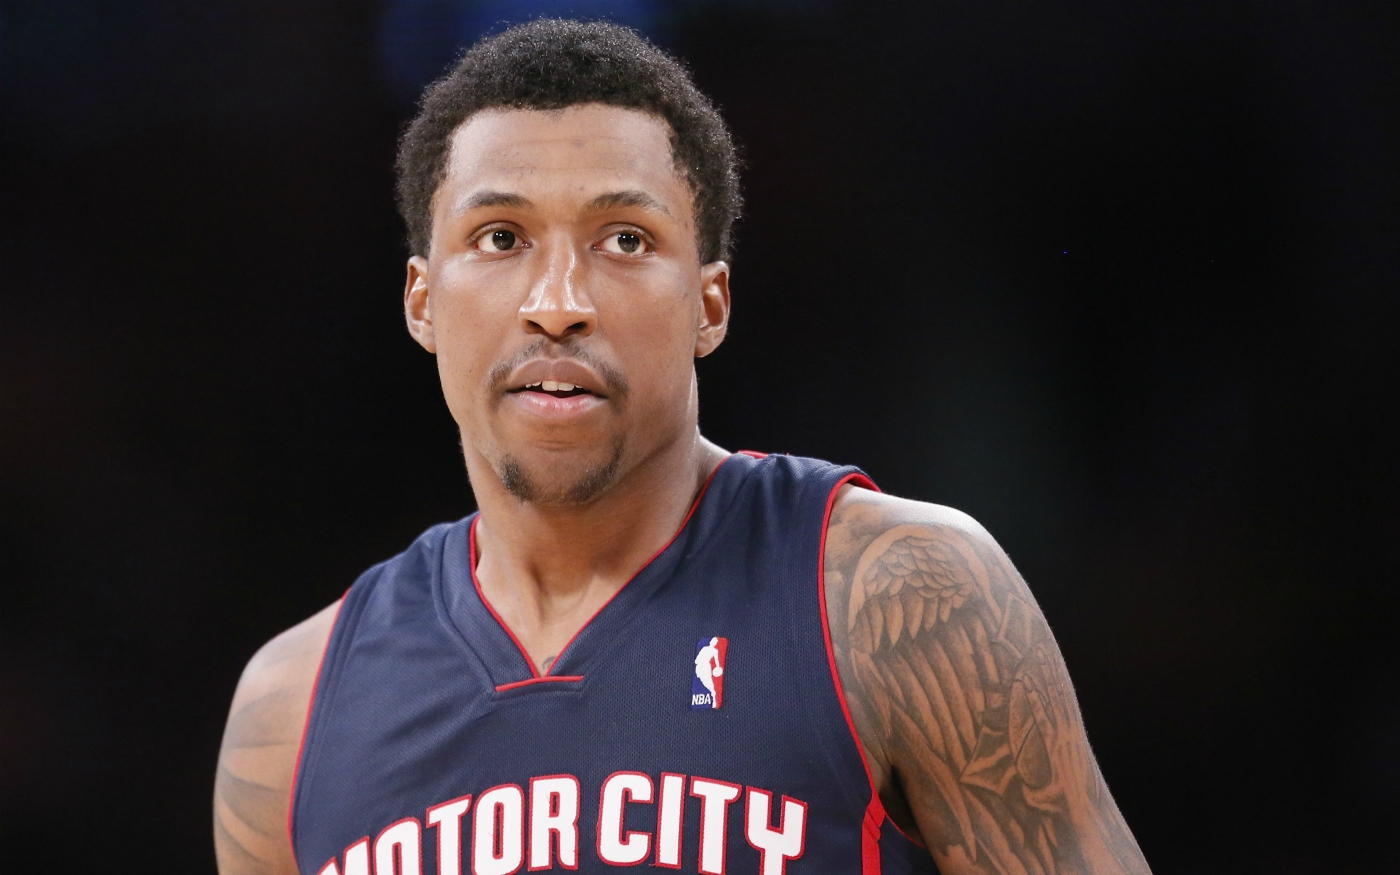 Les Lakers vont tenter Kentavious Caldwell-Pope